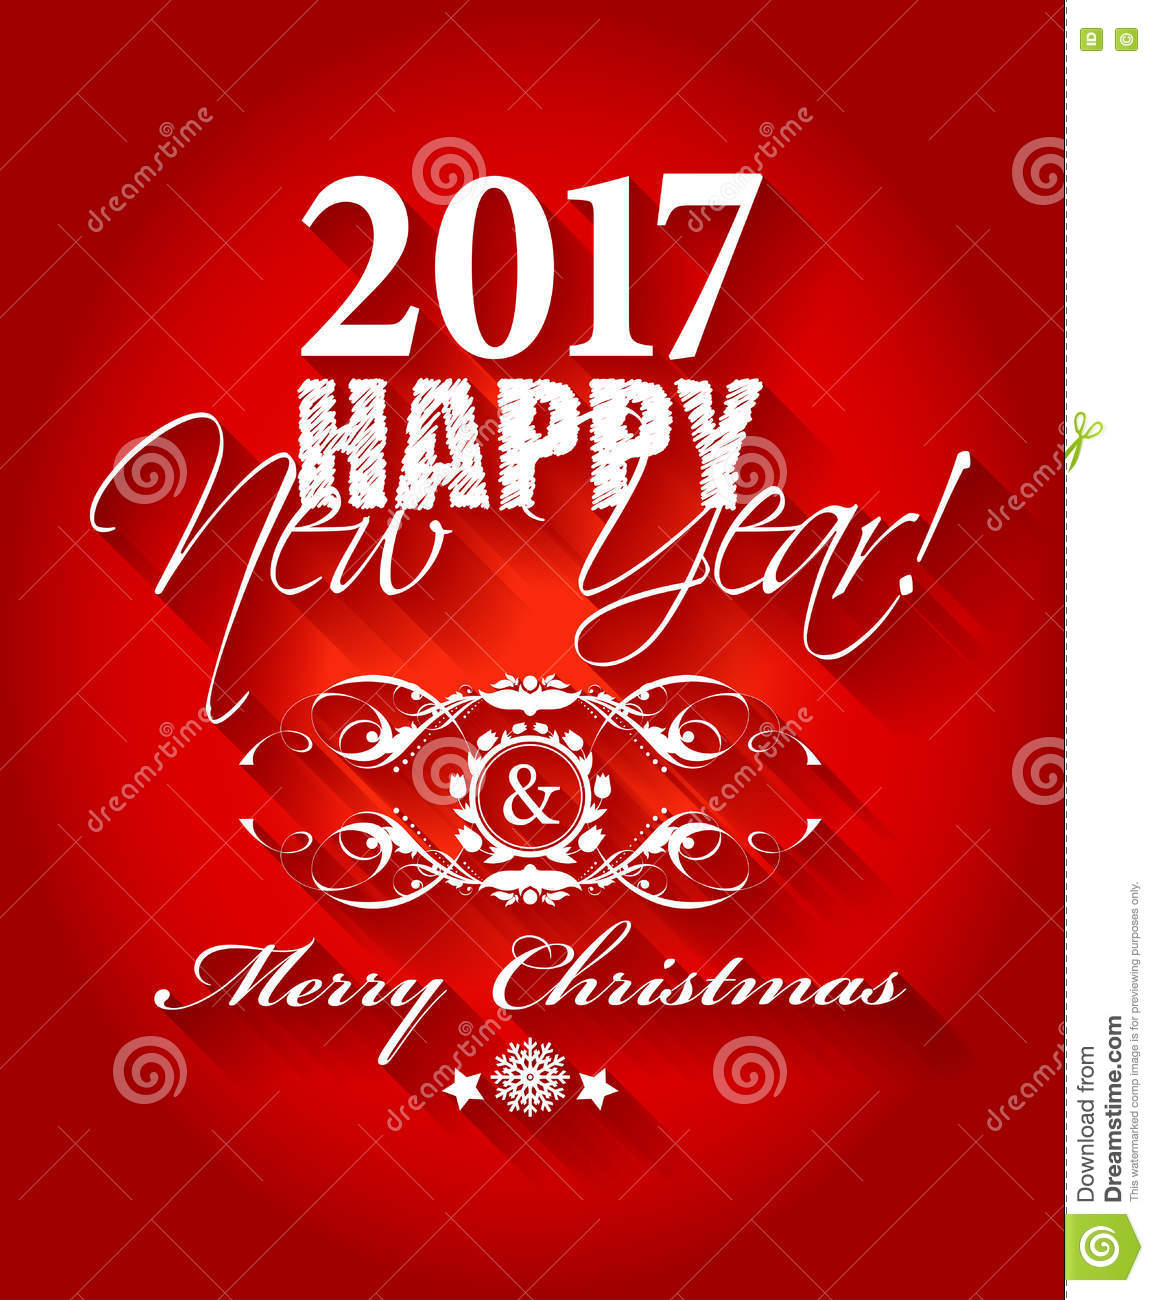 2017 happy new year and merry christmas card or background stock